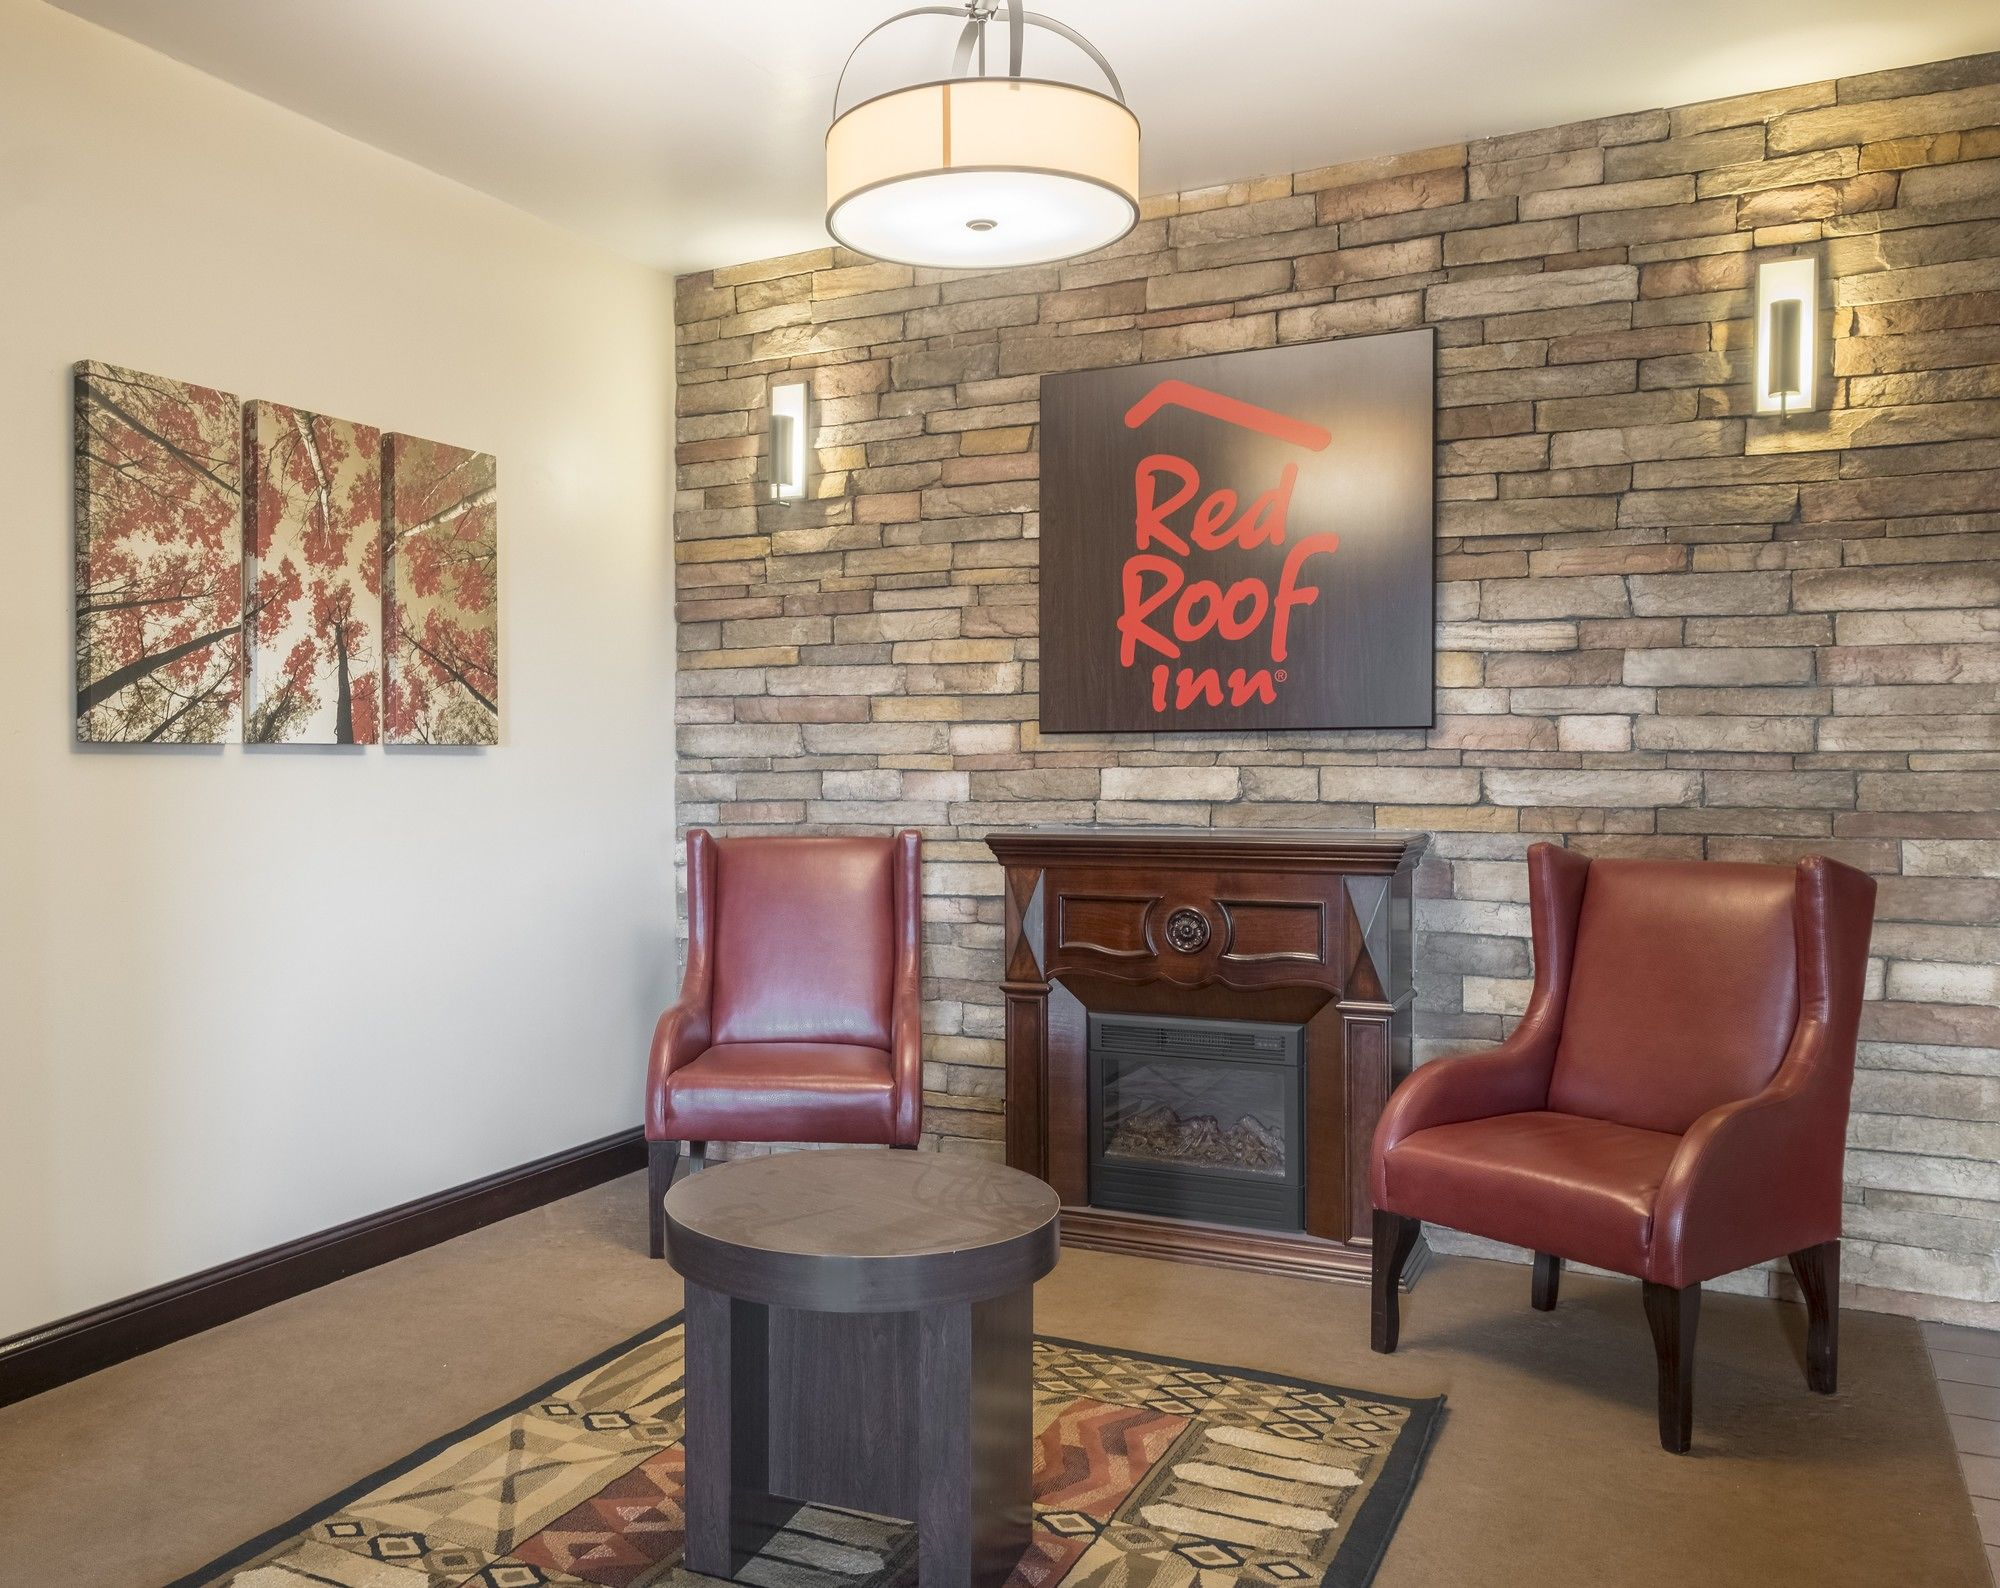 Dayton Hotel Coupons For Dayton Ohio Freehotelcoupons Com